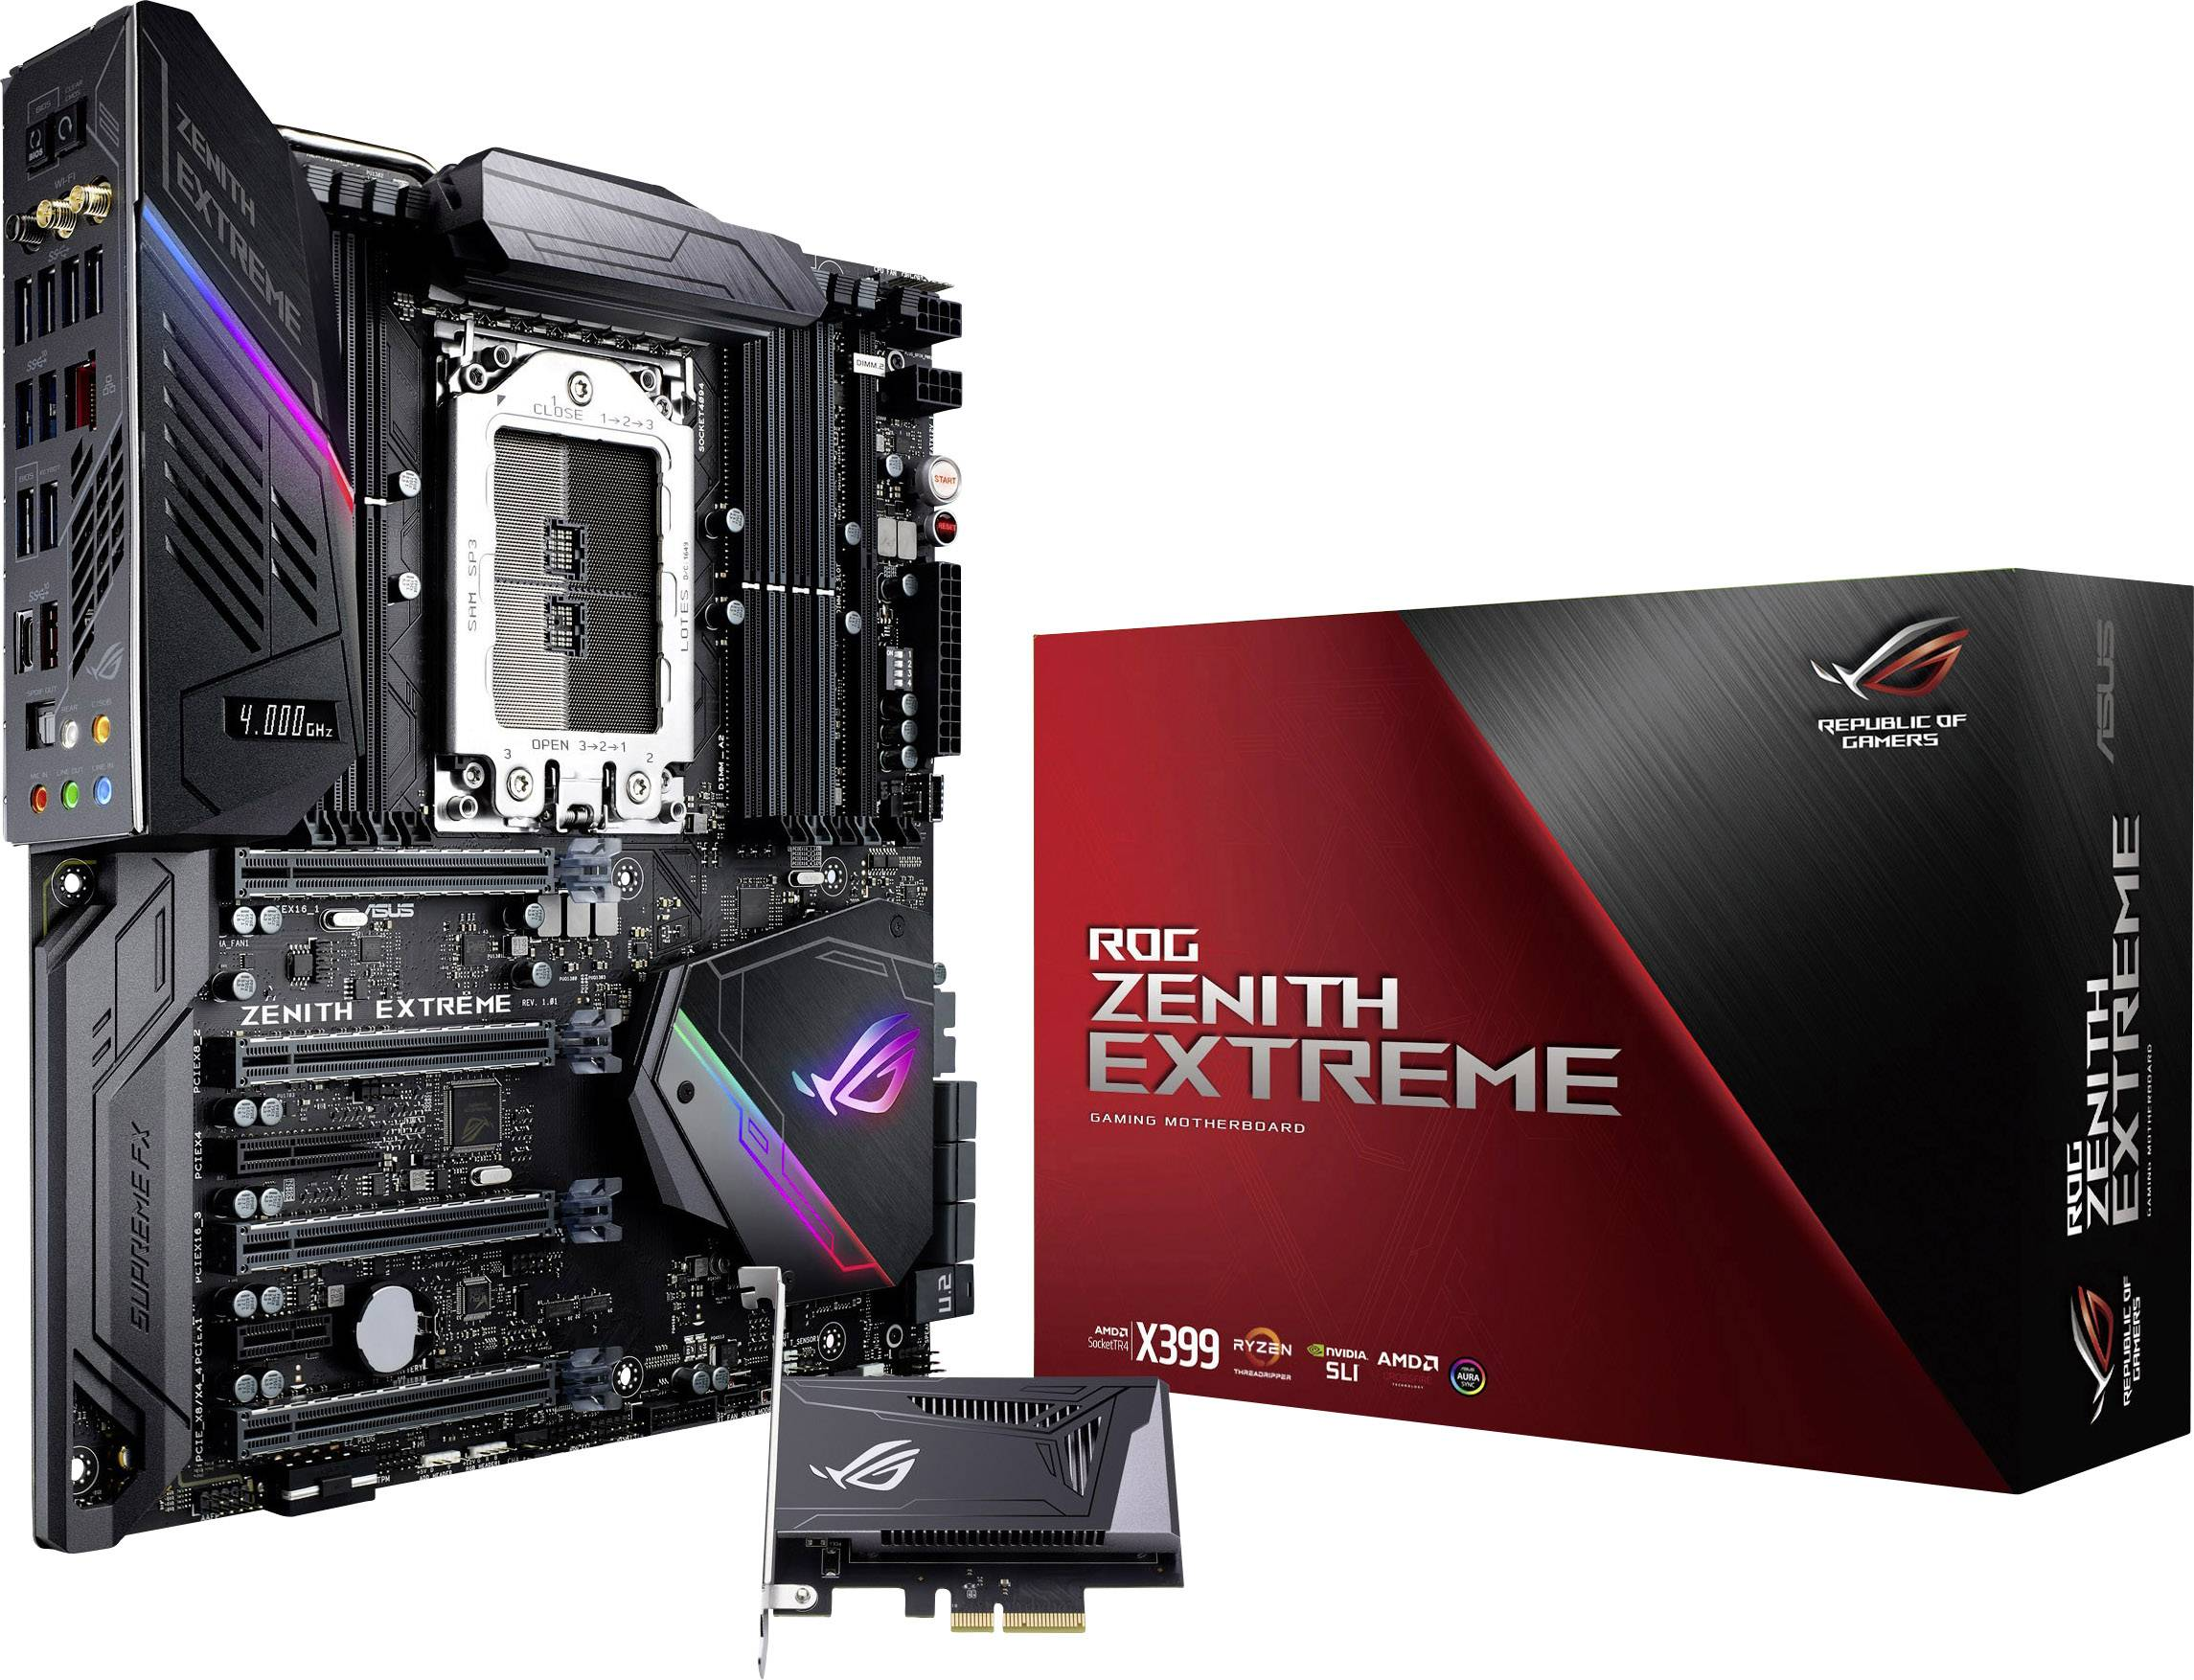 Asus ROG Zenith Extreme Motherboard PC base AMD TR4 Form